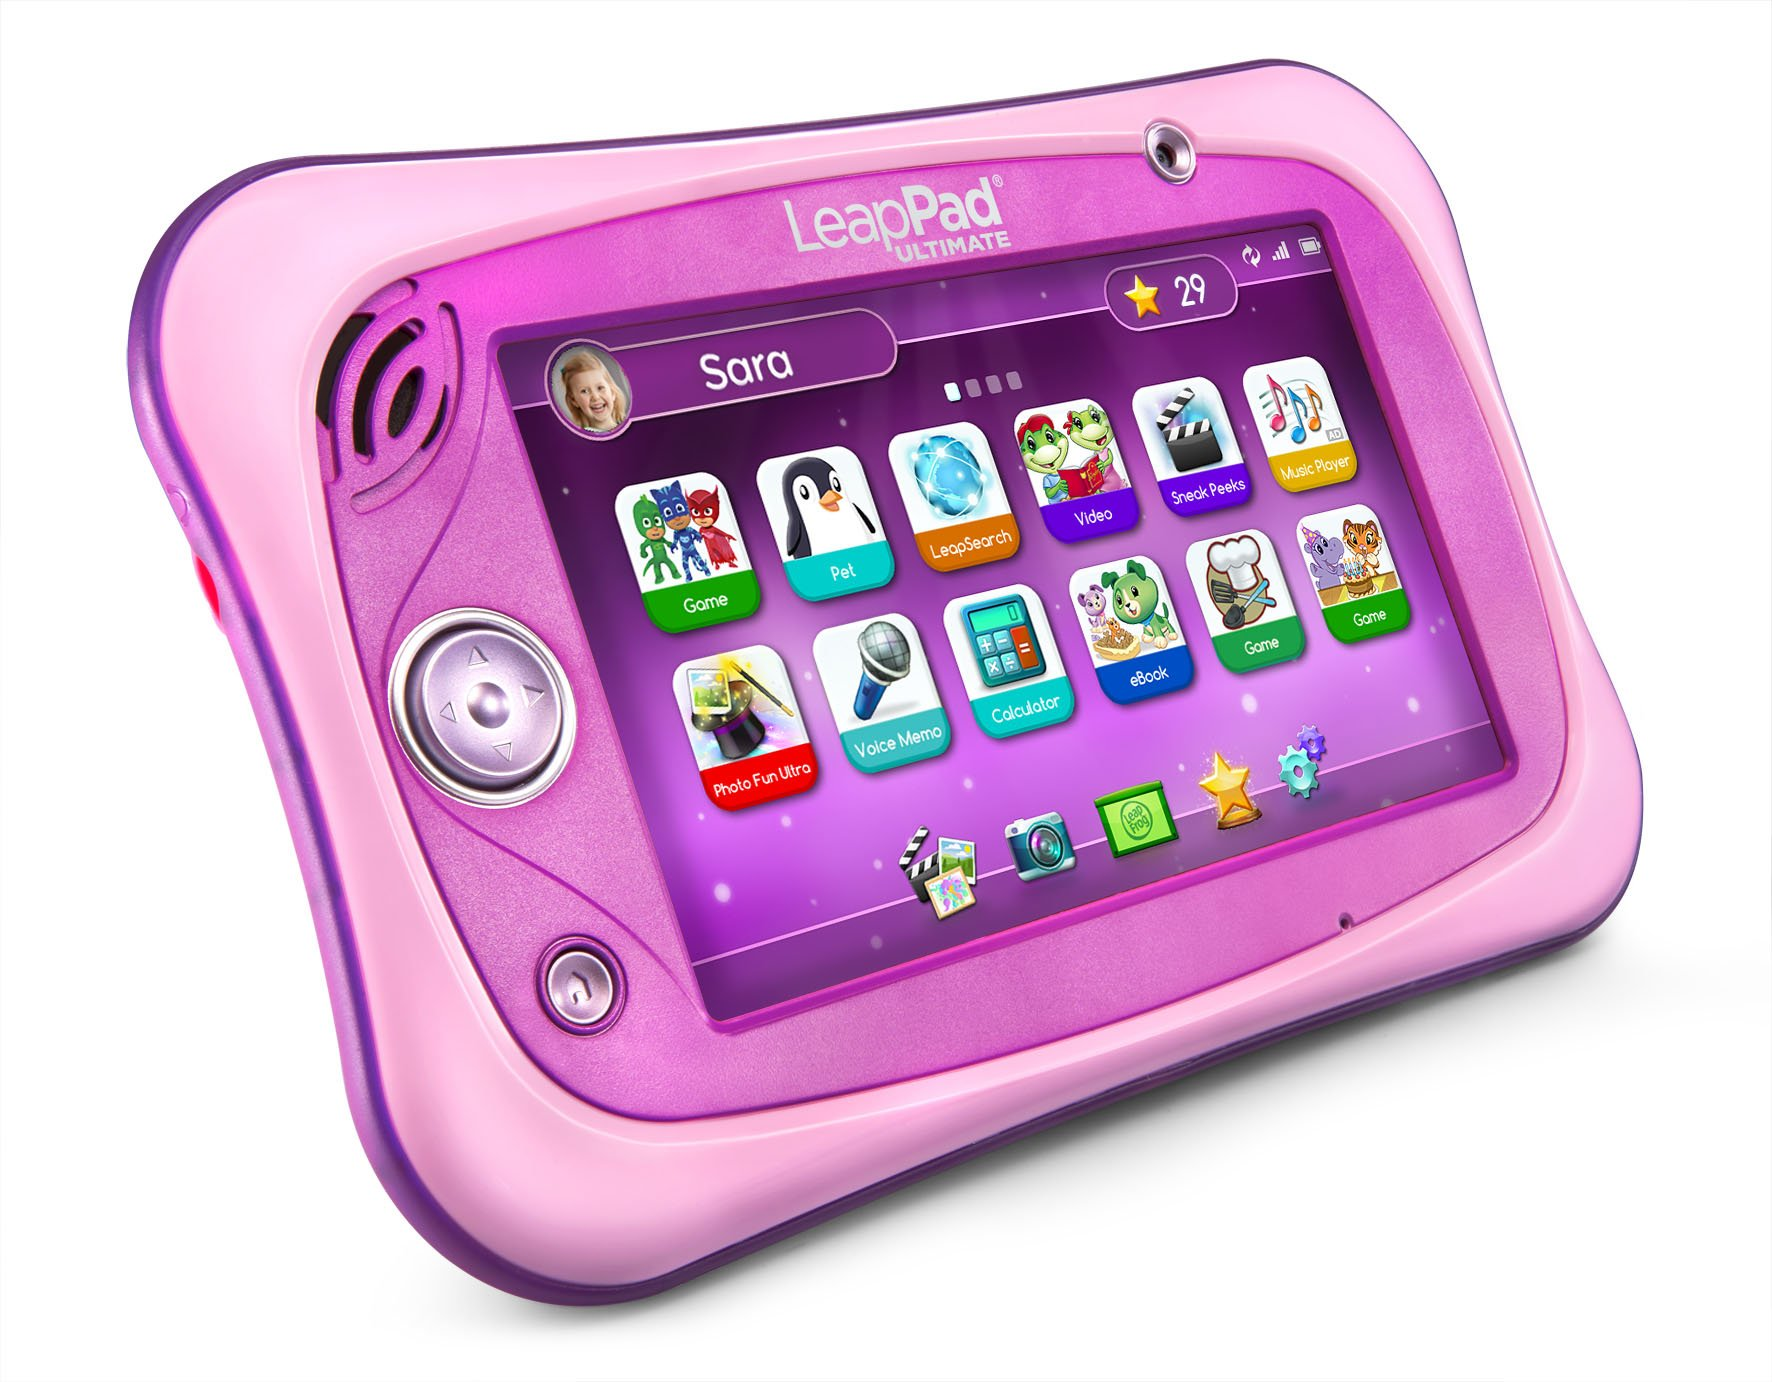 LeapFrog LeapPad Ultimate Ready for School Tablet, Pink by LeapFrog (Image #1)